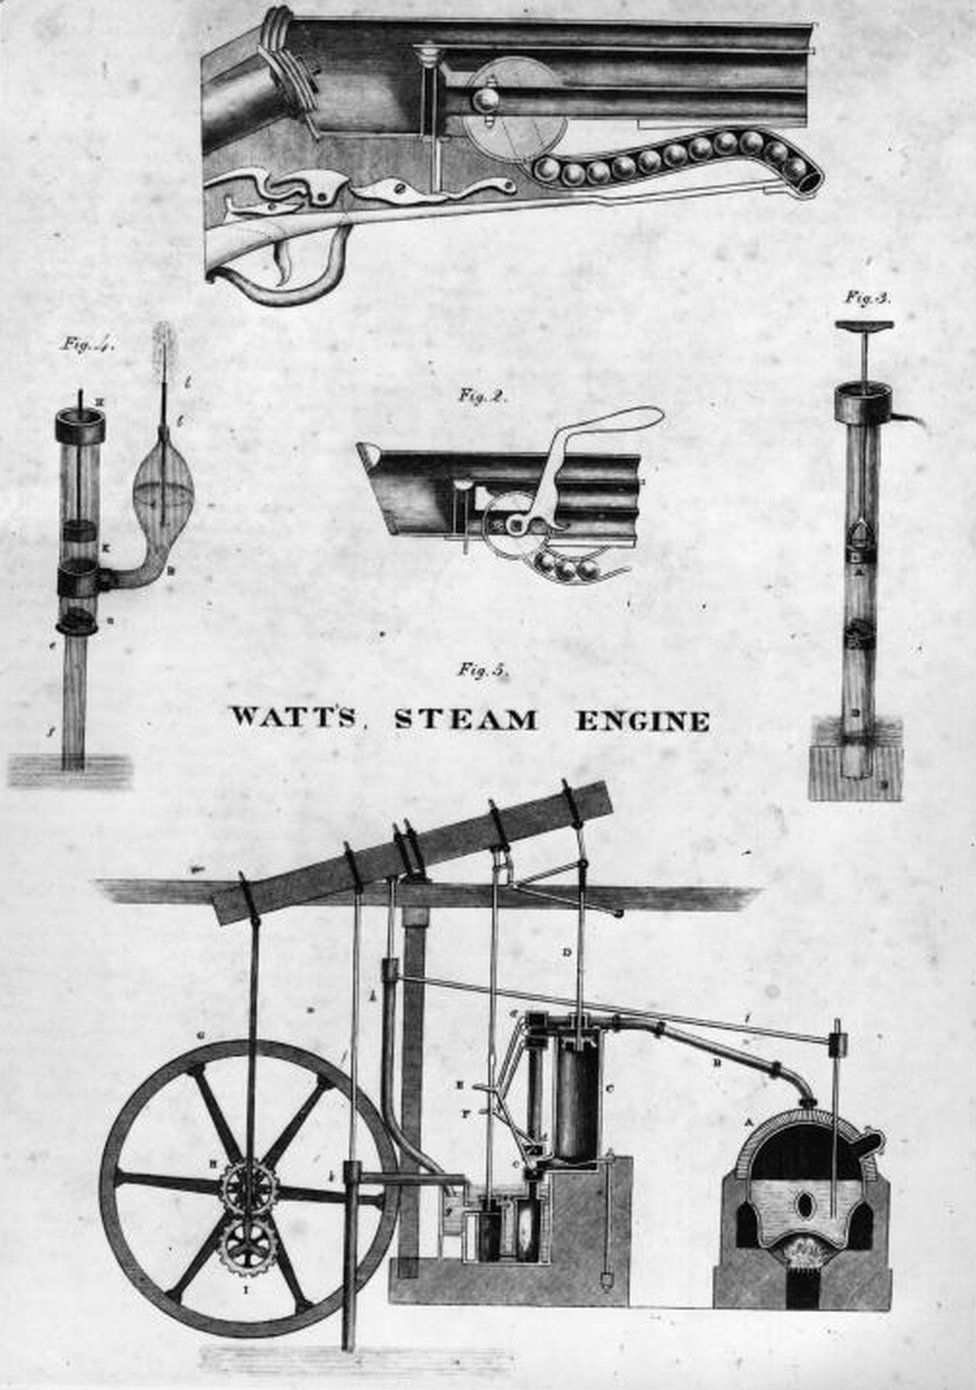 Diagrams of pistons and valves and James Watt's steam engine, circa 1785